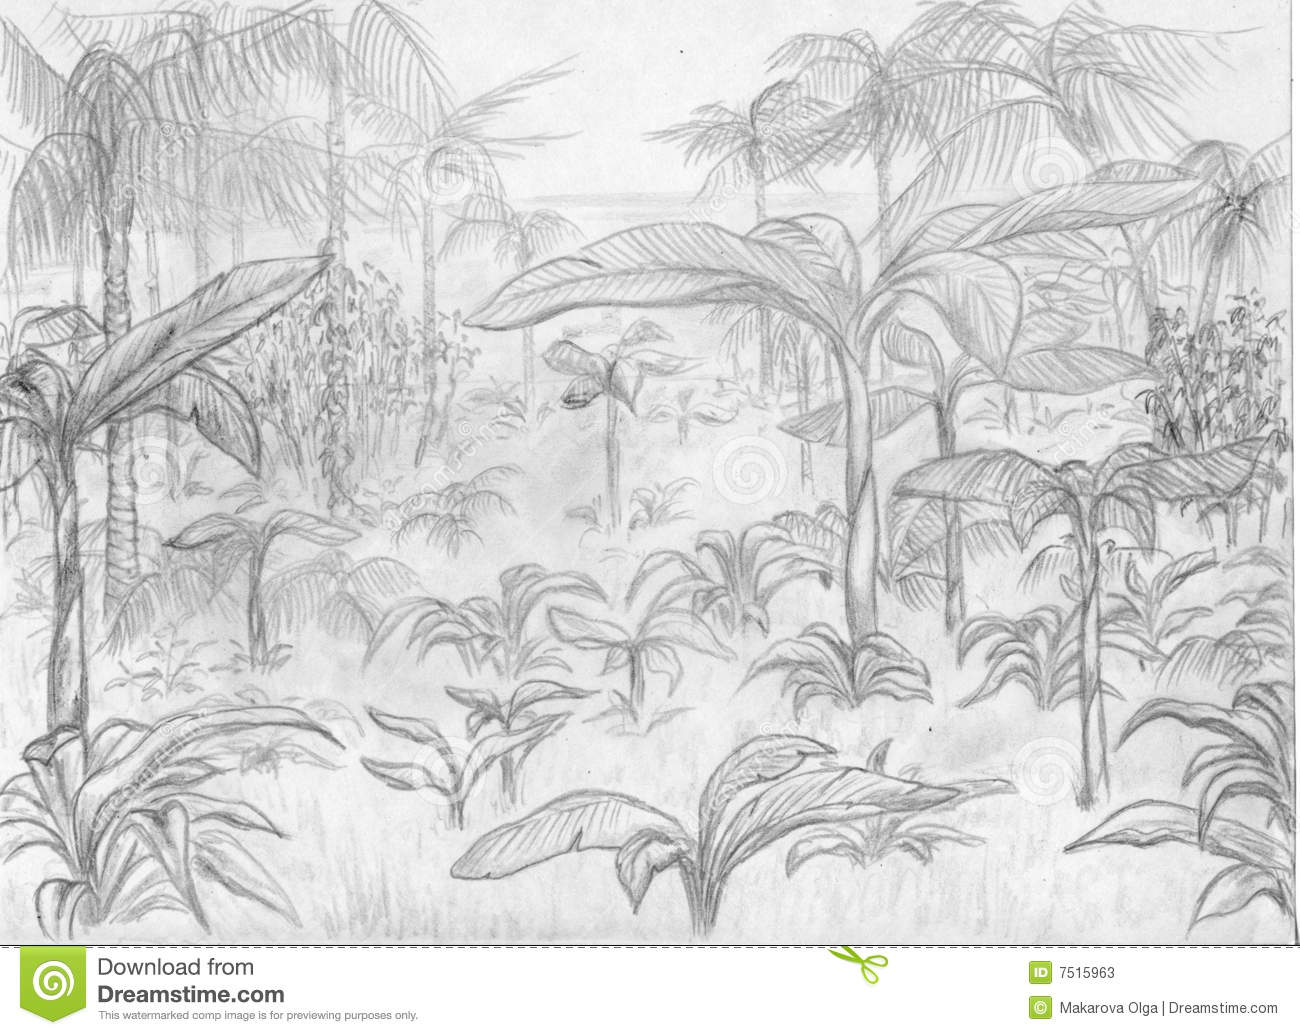 Jungle landscape palm trees and all that pencil drawing